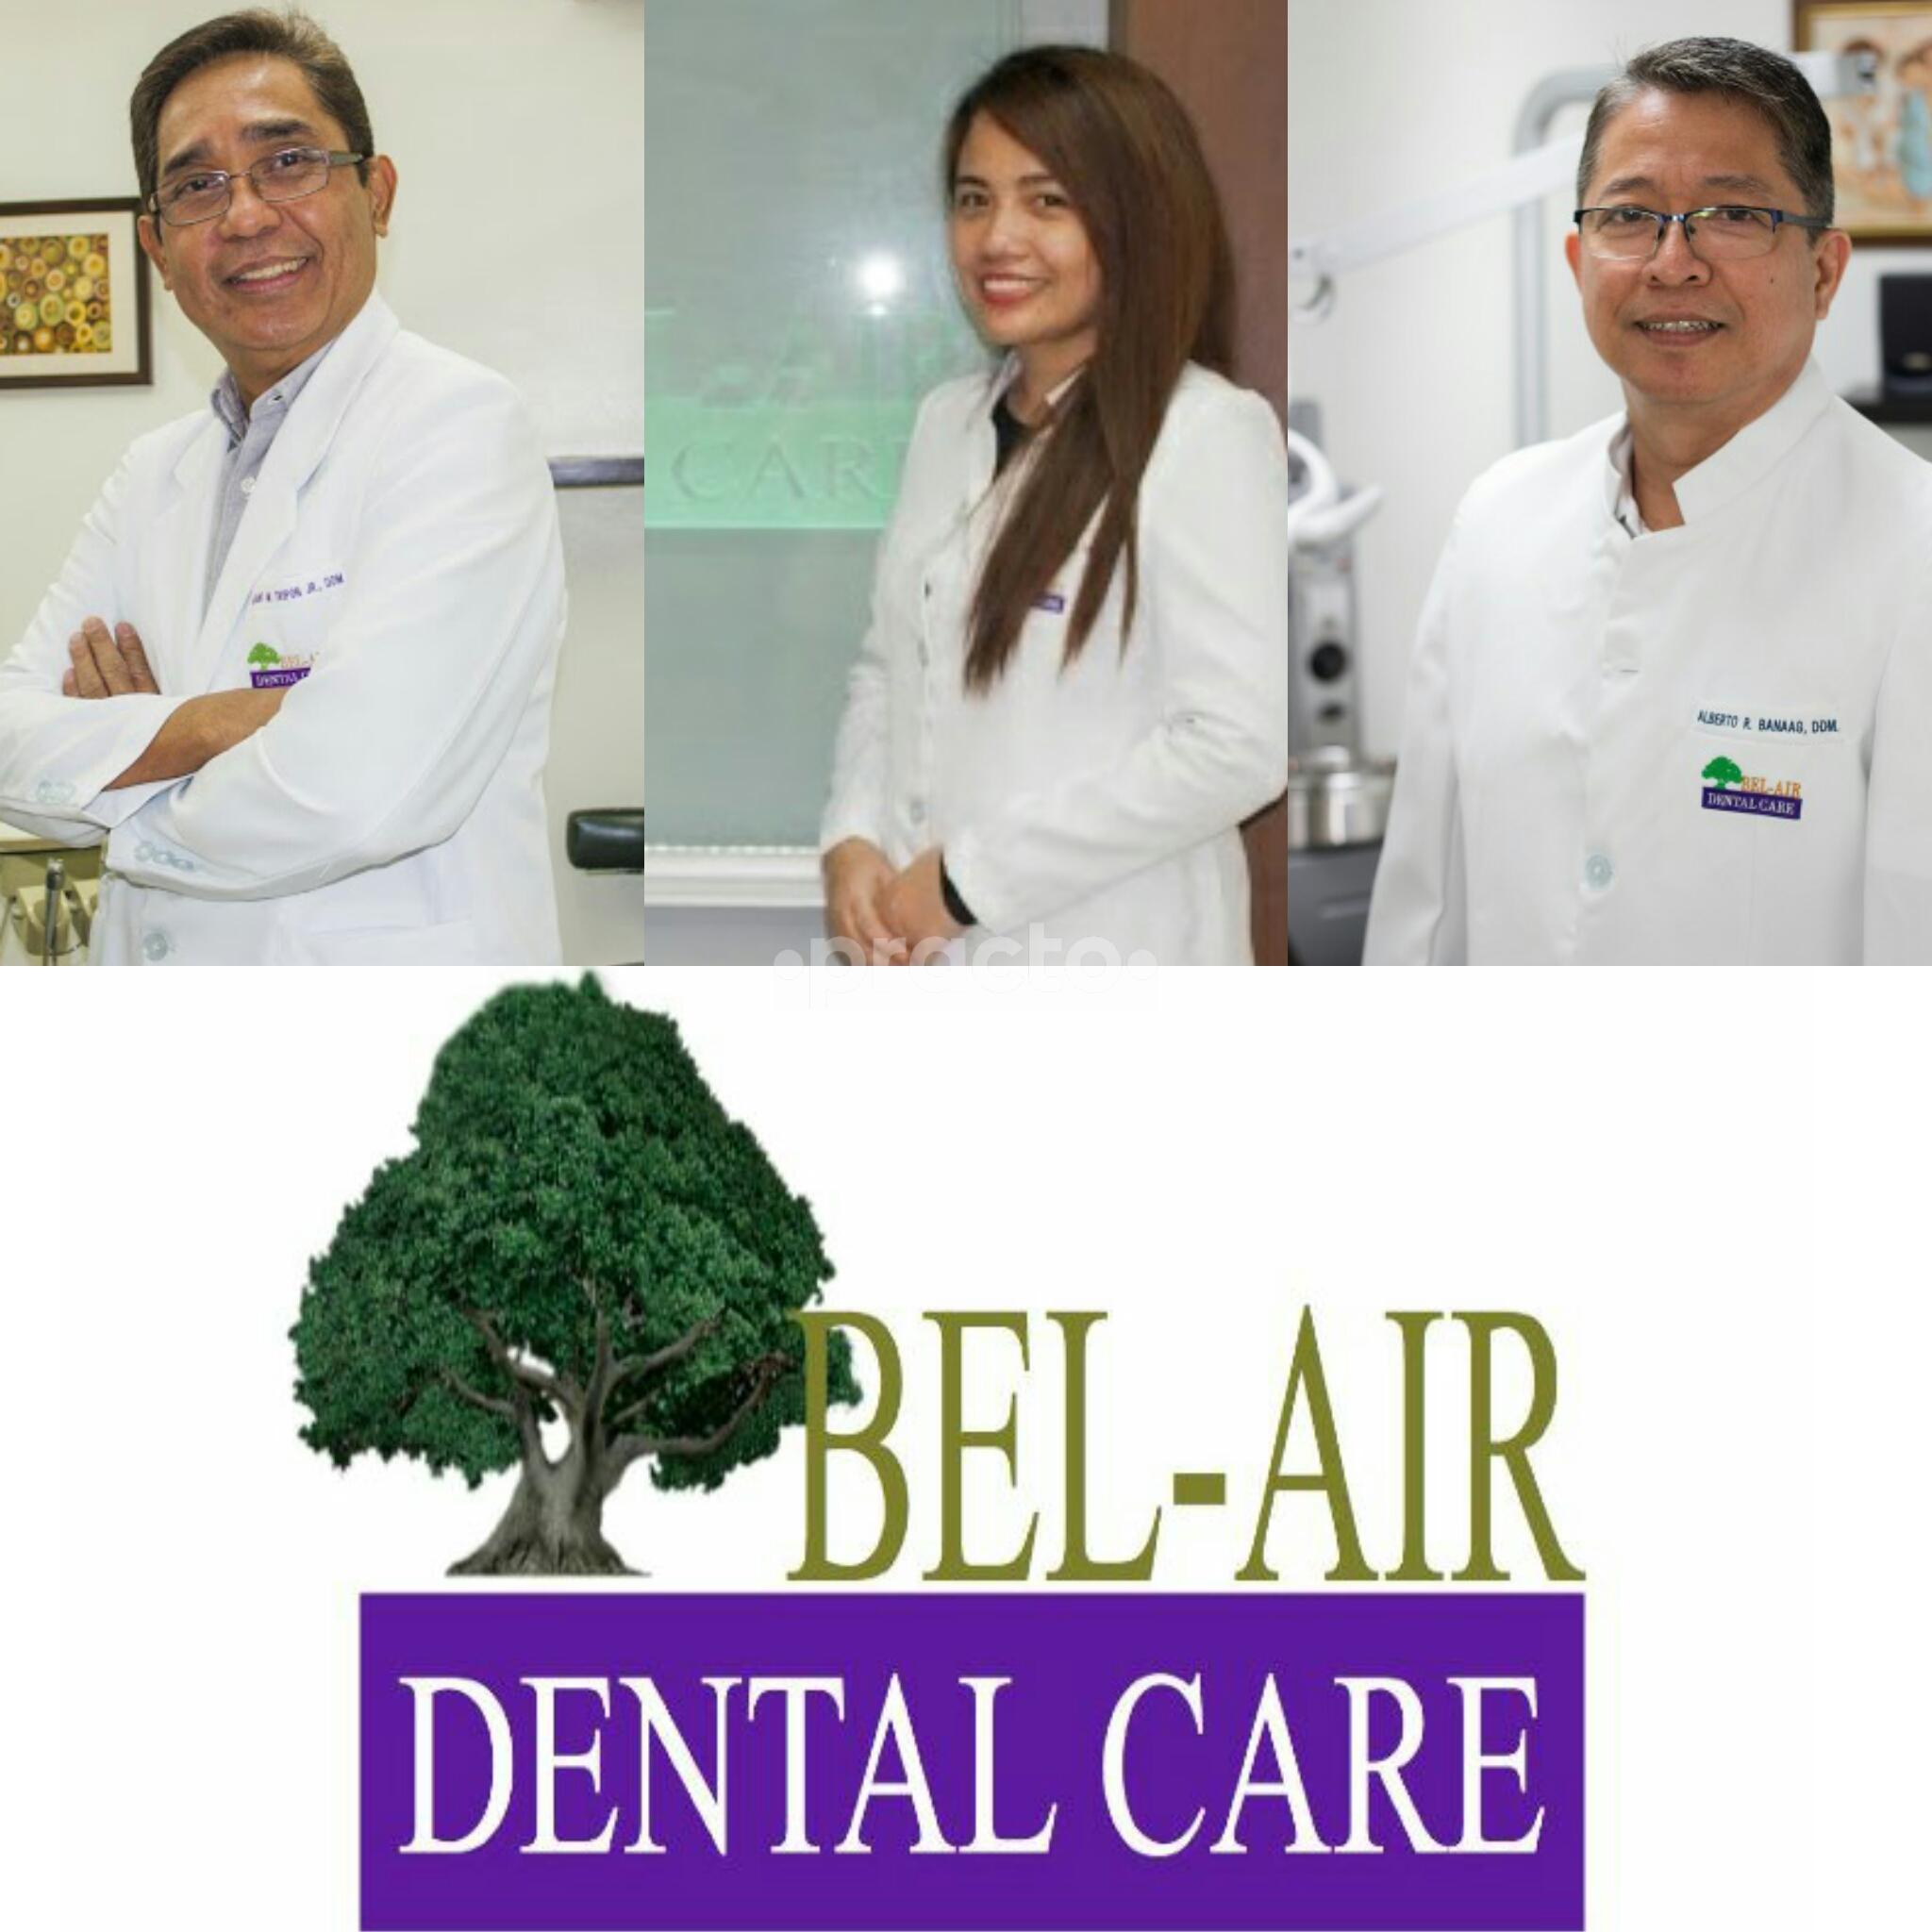 Bel - Air Dental Care